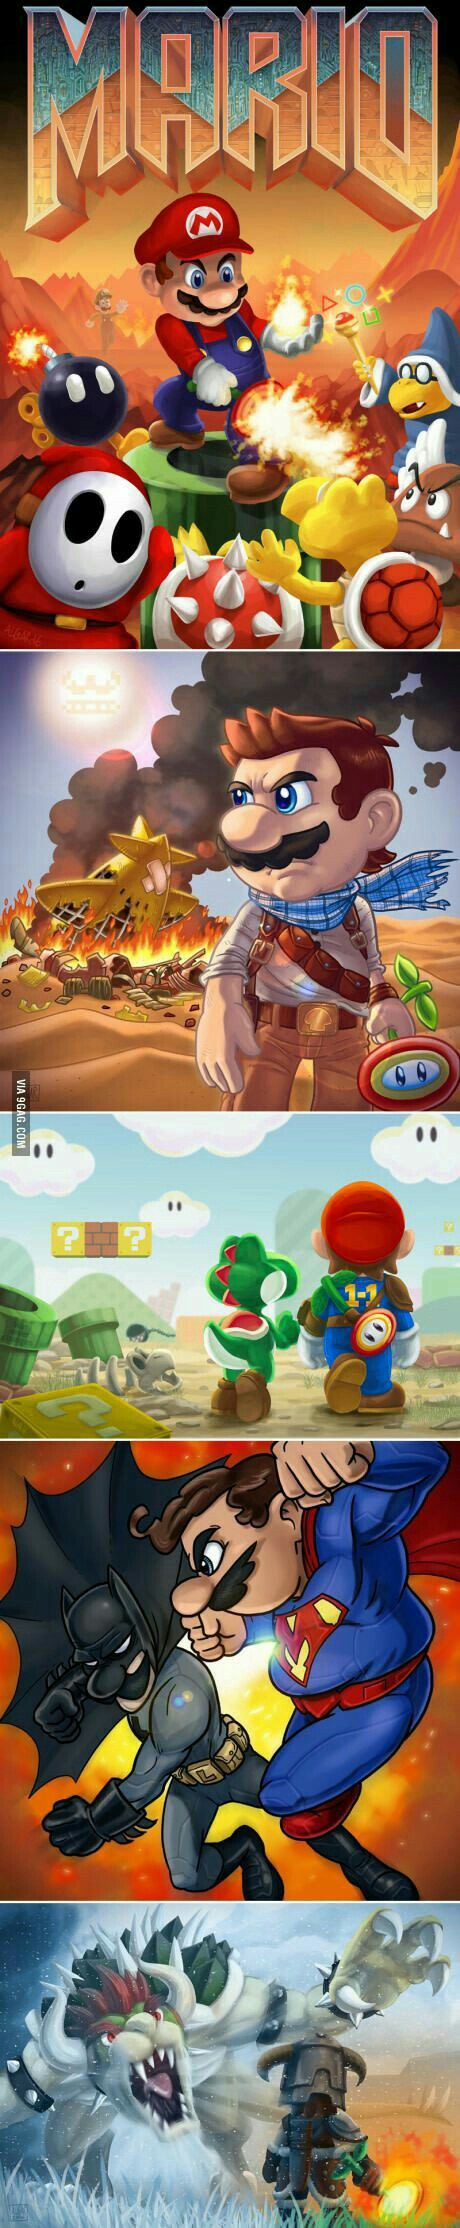 Mario reimagined in different games